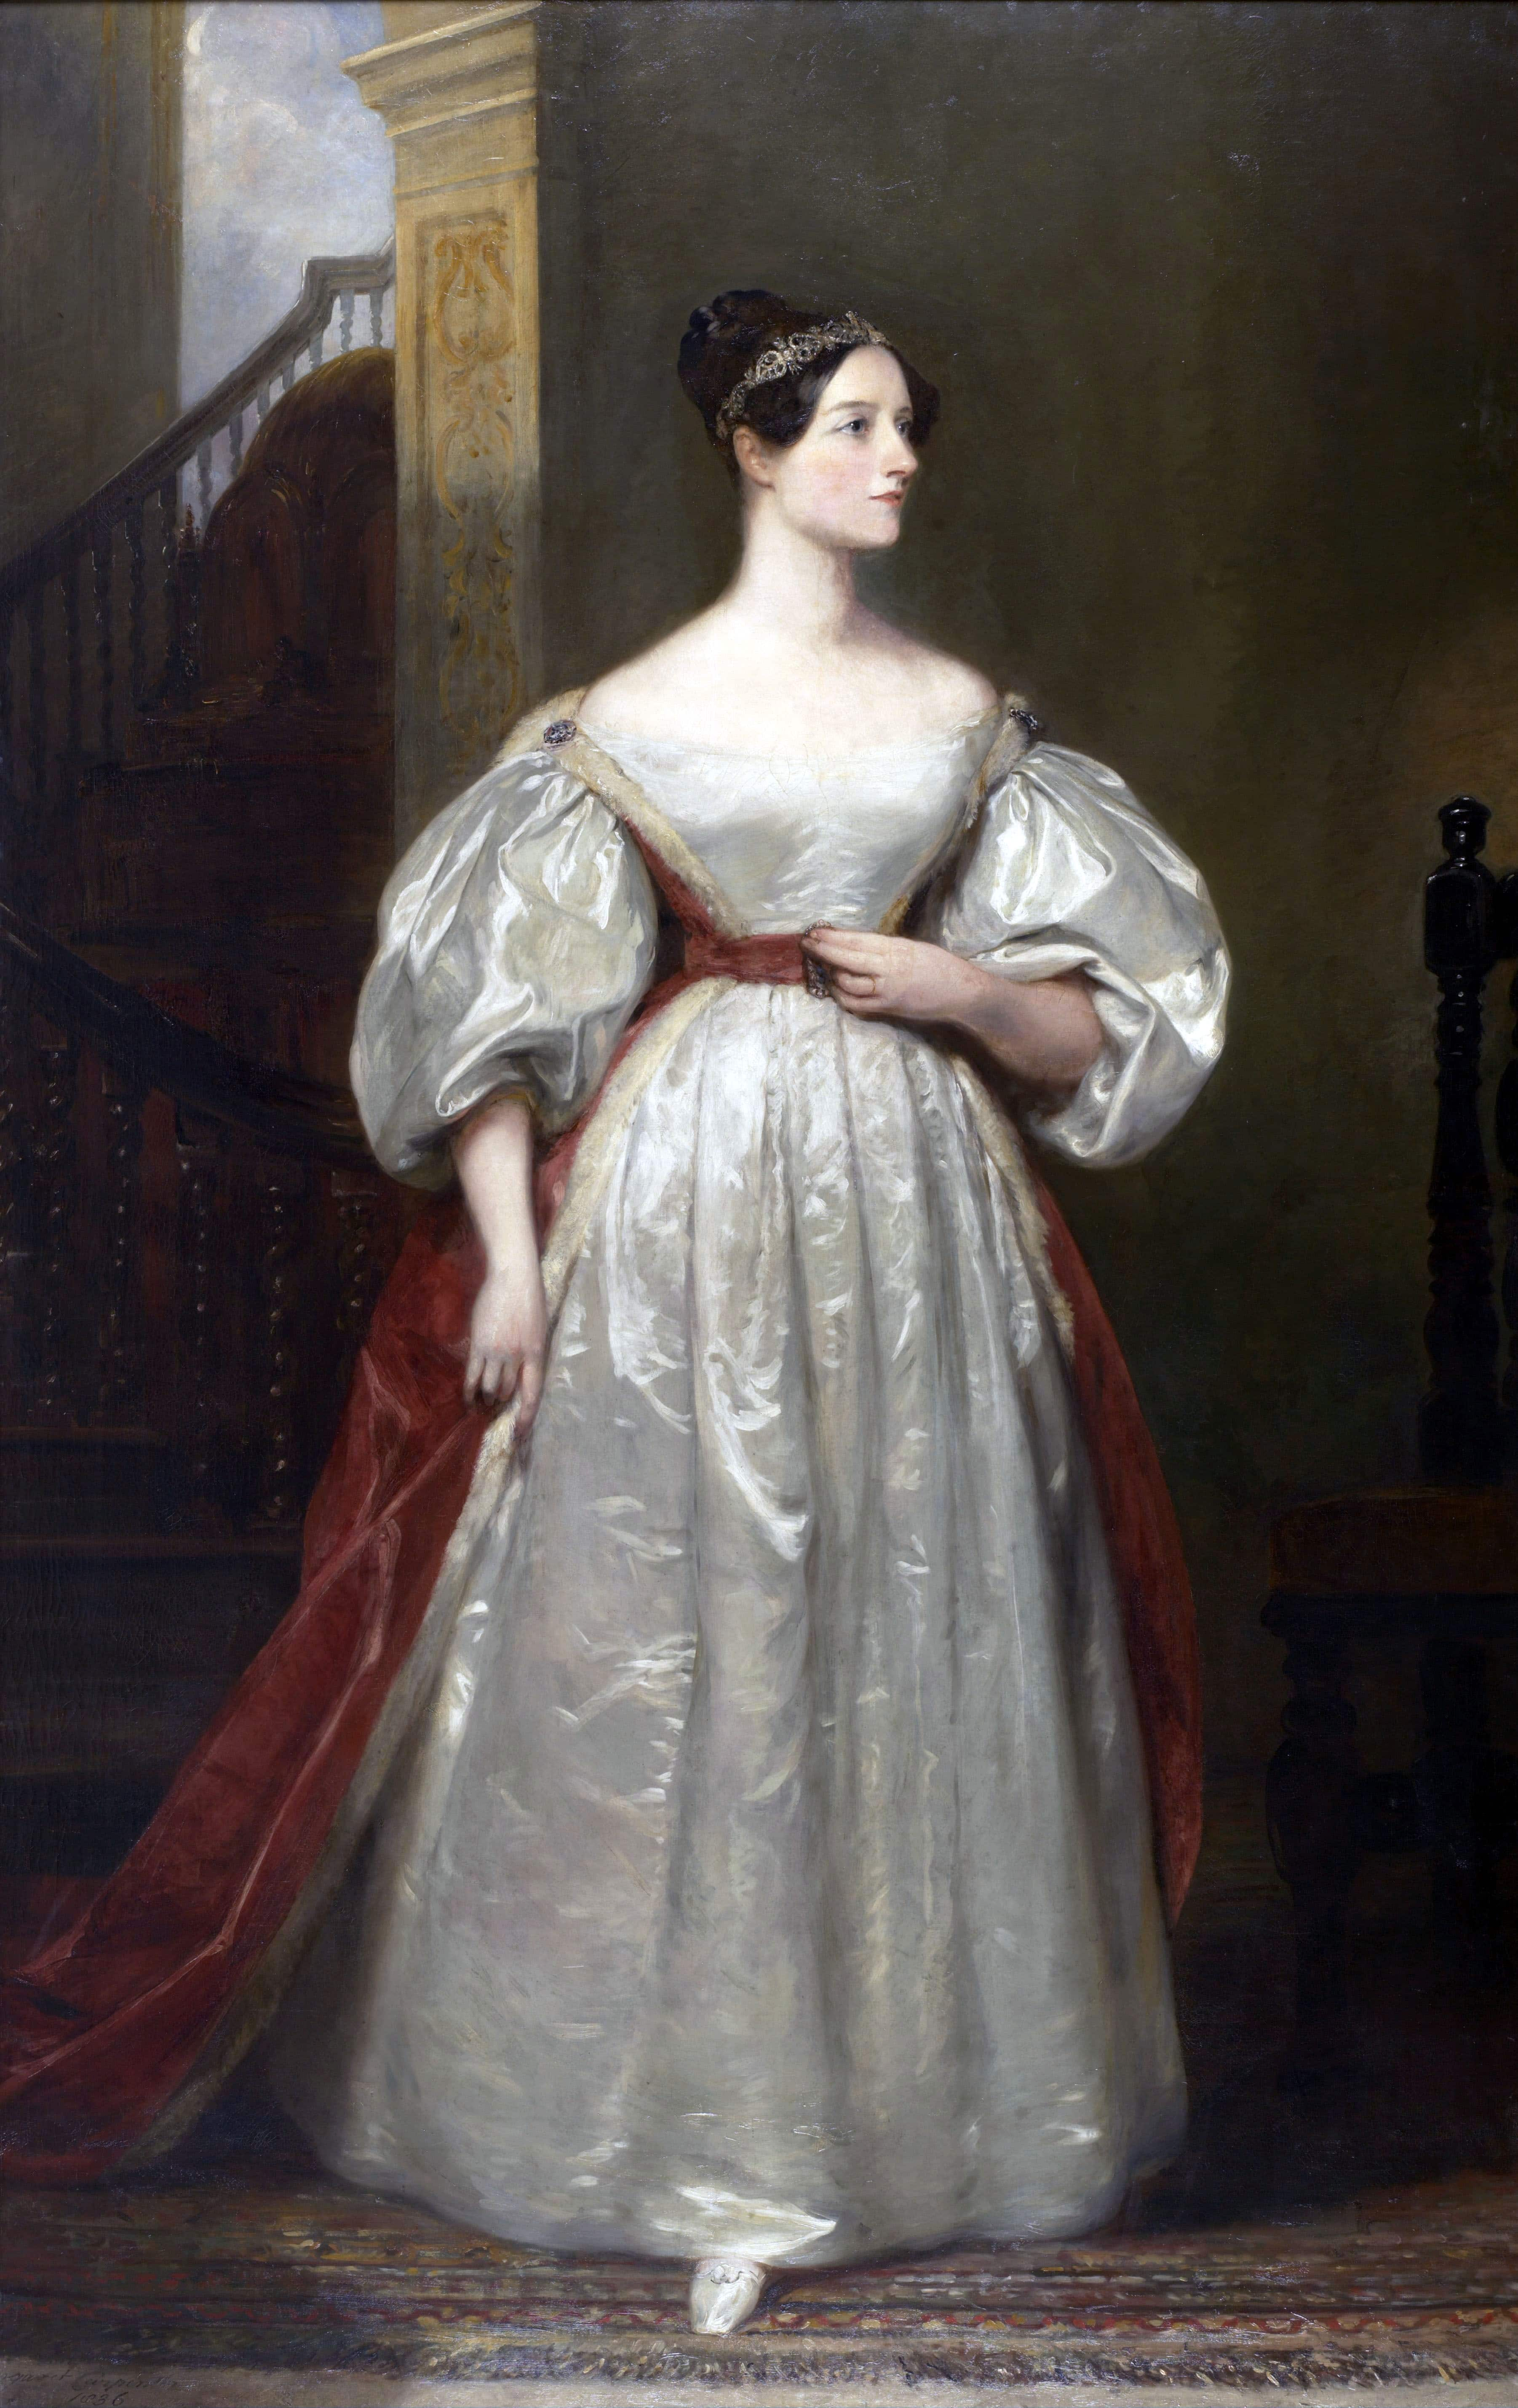 Ada Lovelace was renowned for her intellect and interest in technology.